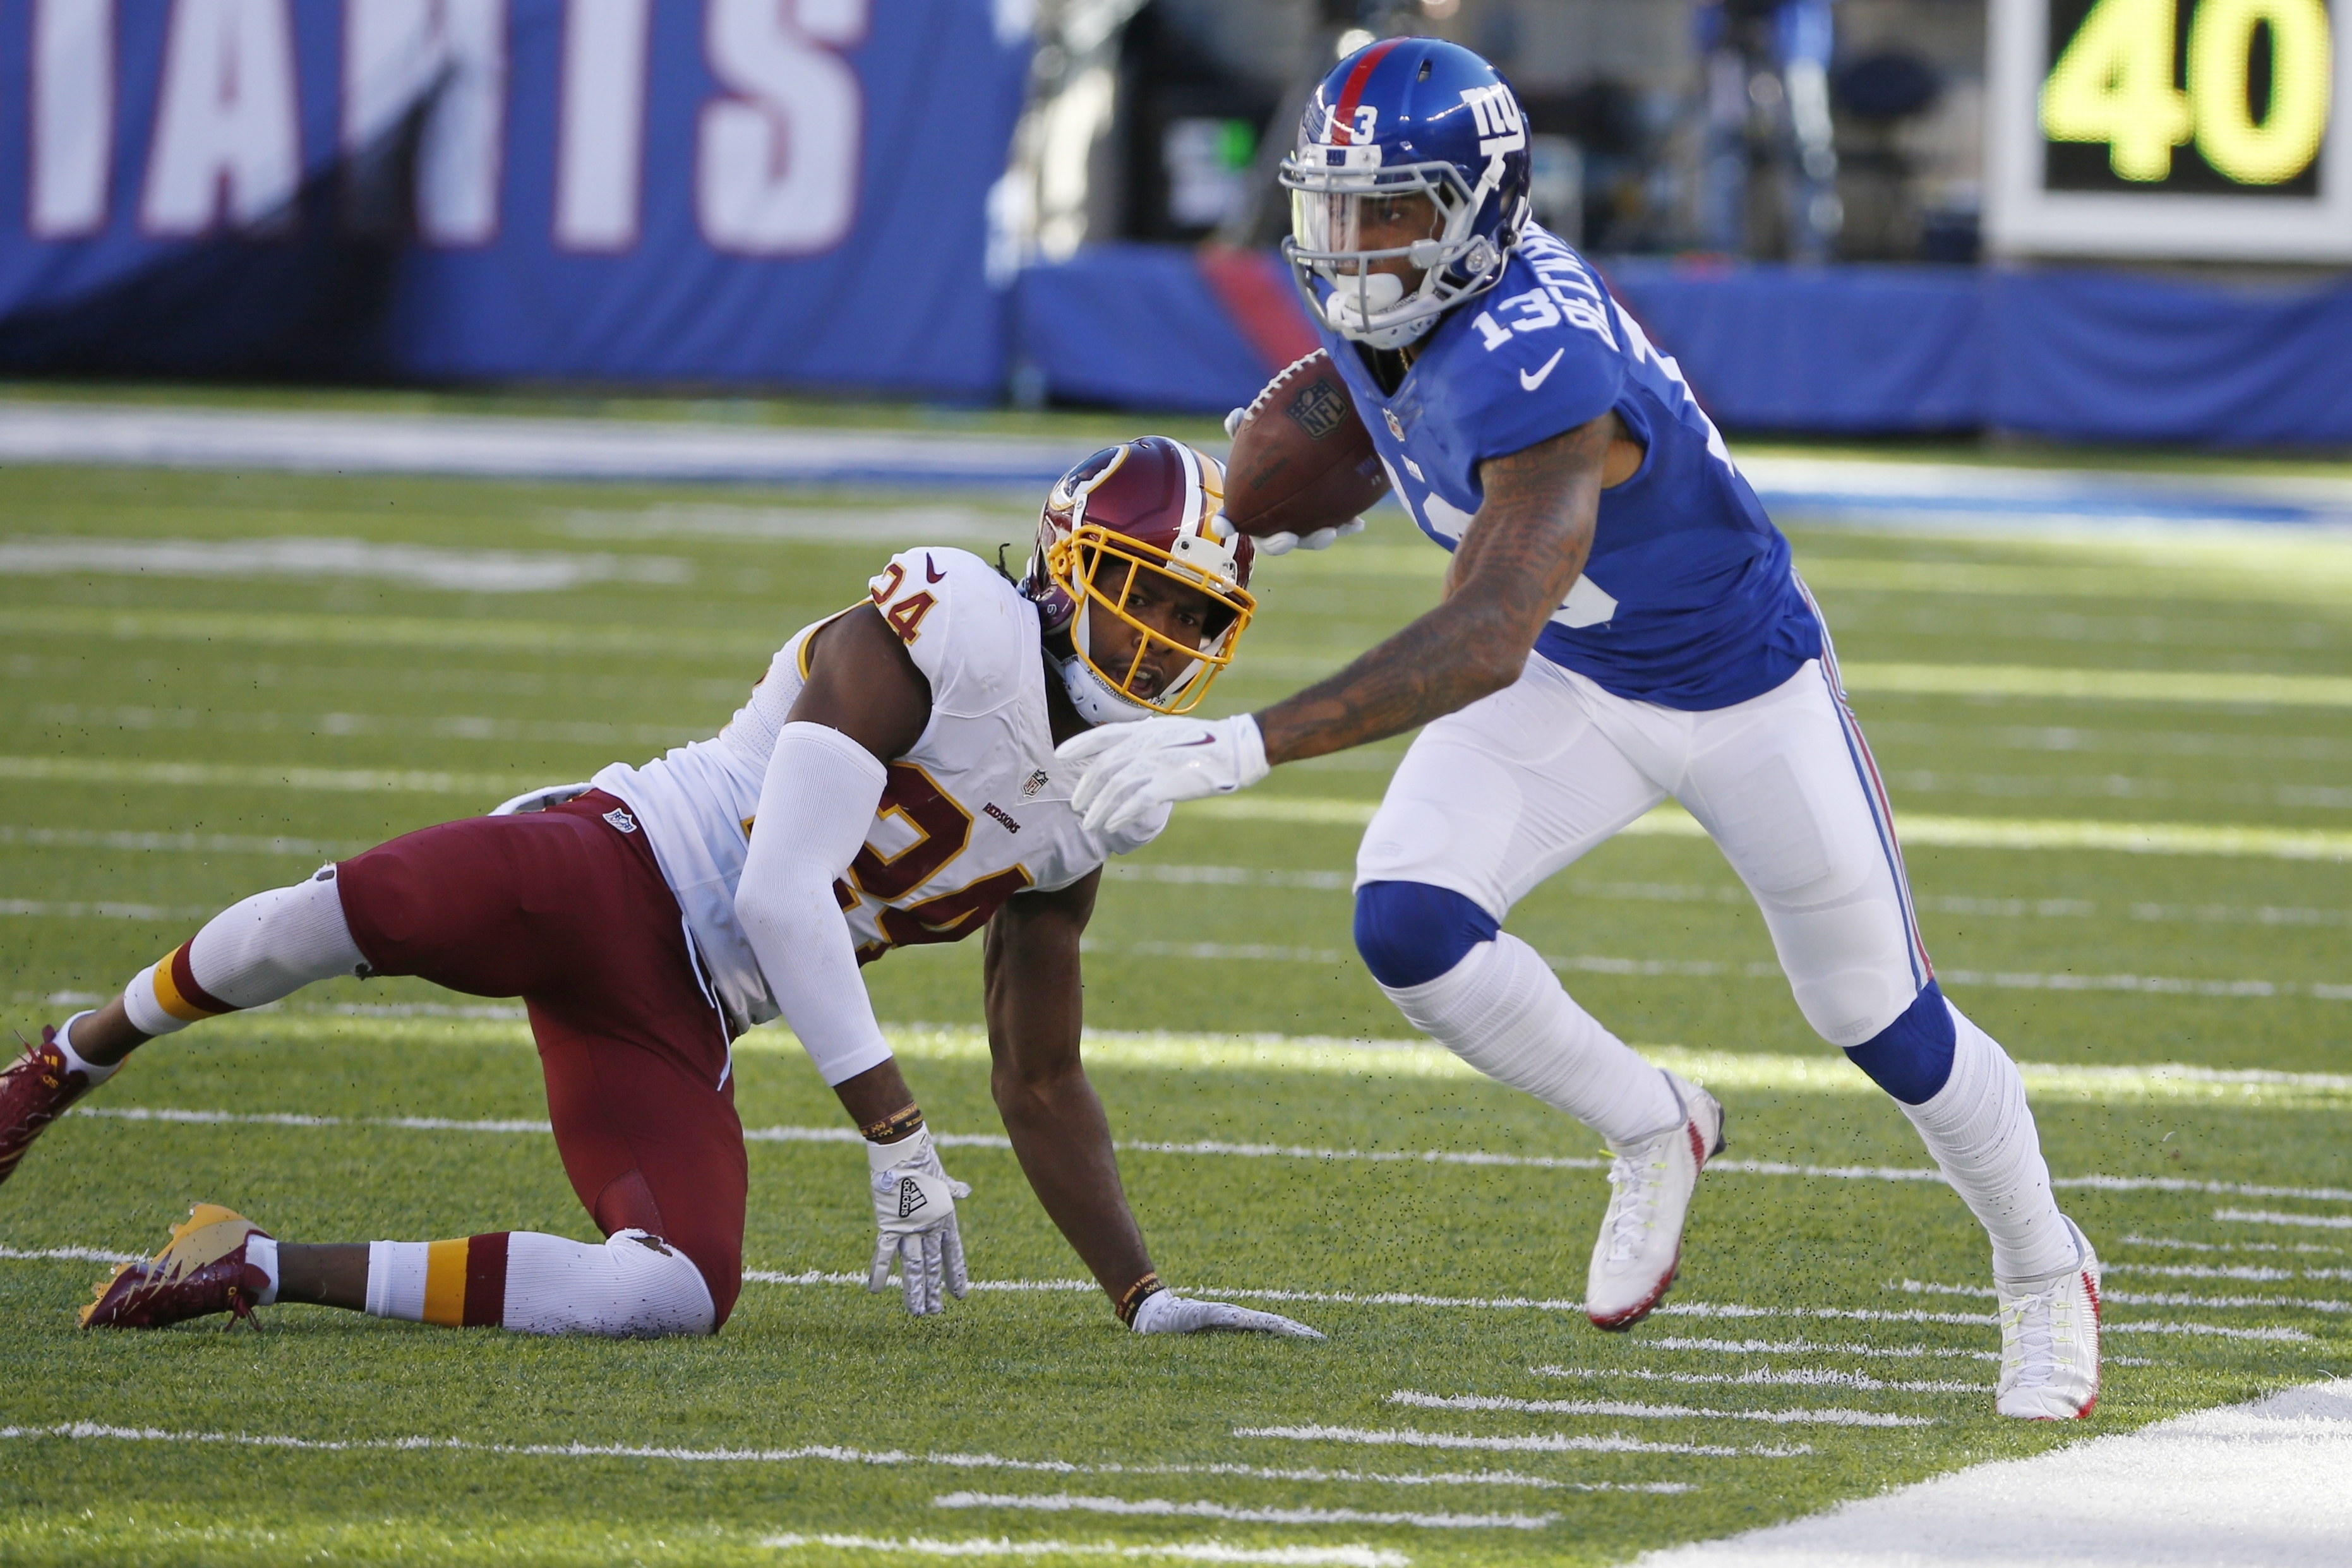 New York Giants wide receiver Odell Beckham Jr. (13) runs away from Washington Redskins' Josh Norman (24) during the second half of an NFL football game, Sunday, Sept. 25, 2016, in East Rutherford, N.J. (AP Photo/Kathy Willens)